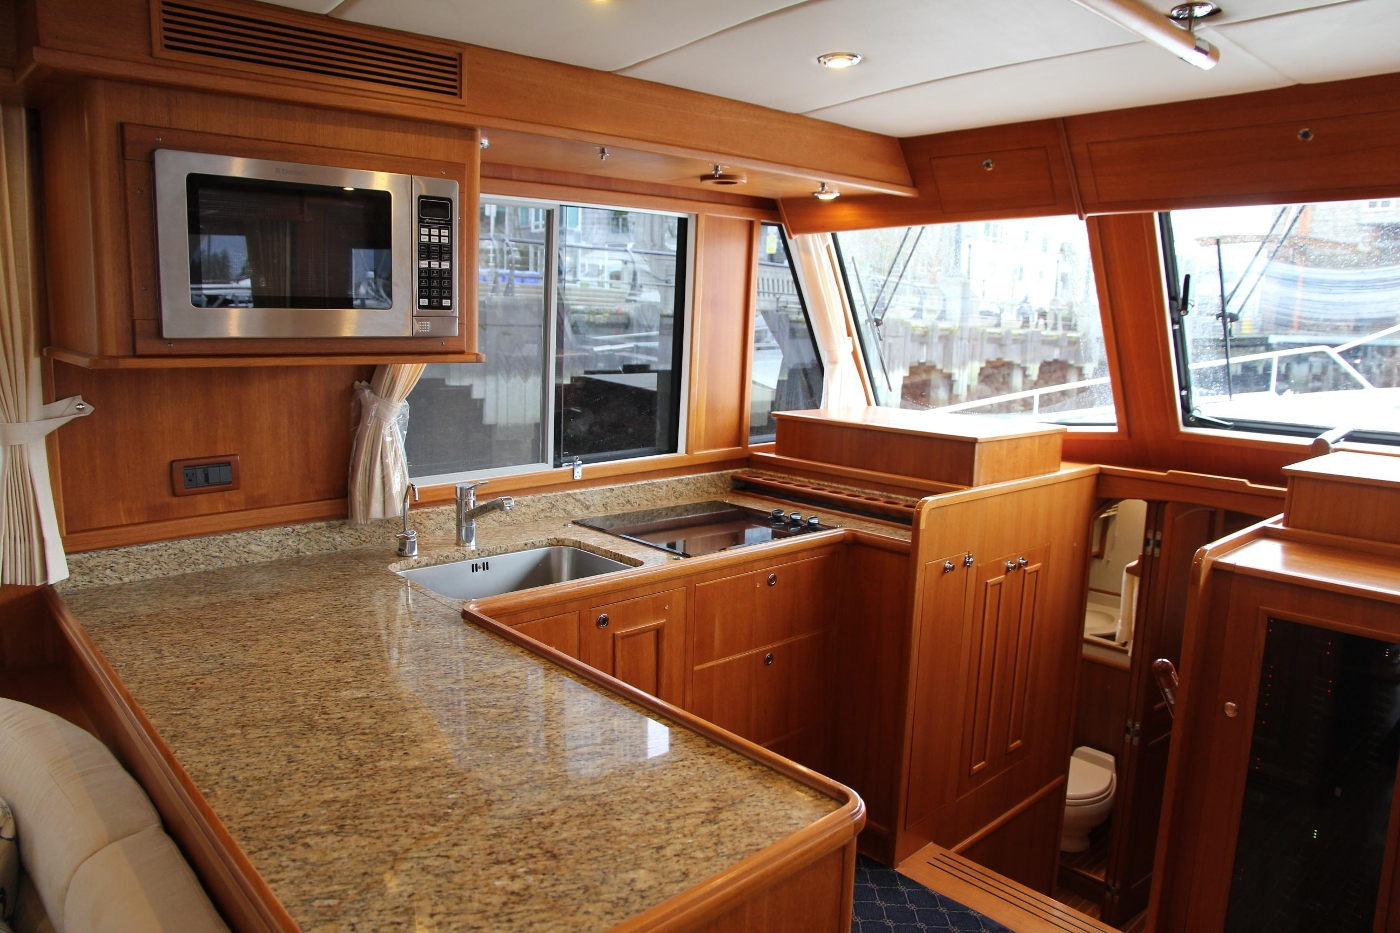 2009 Grand Banks 47 Europa, Galley from Salon